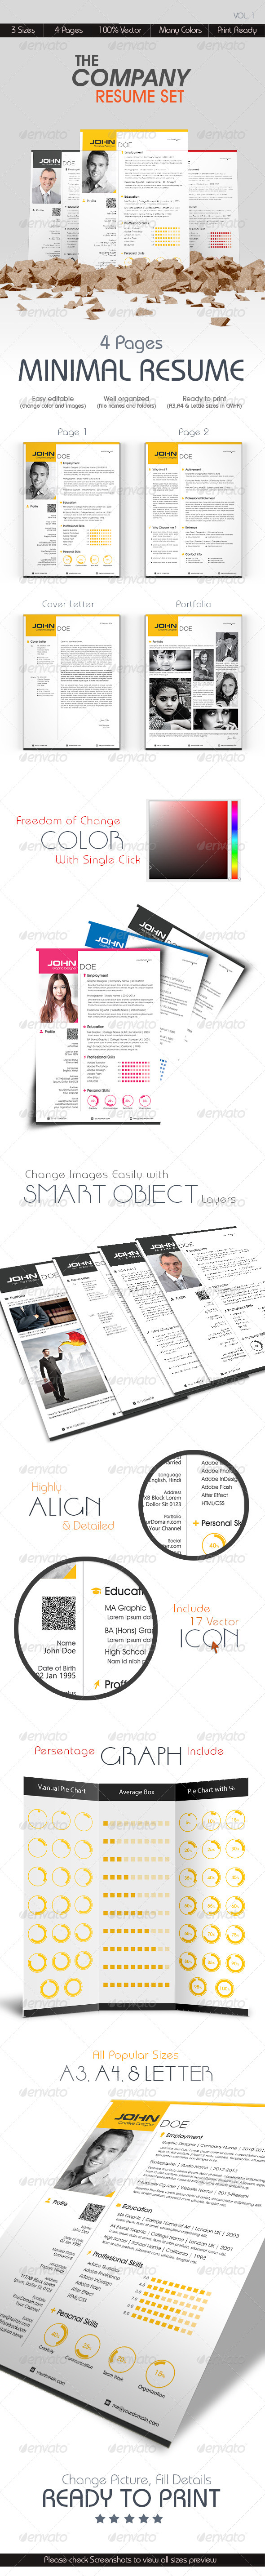 GraphicRiver The Company Resume Set 6635592